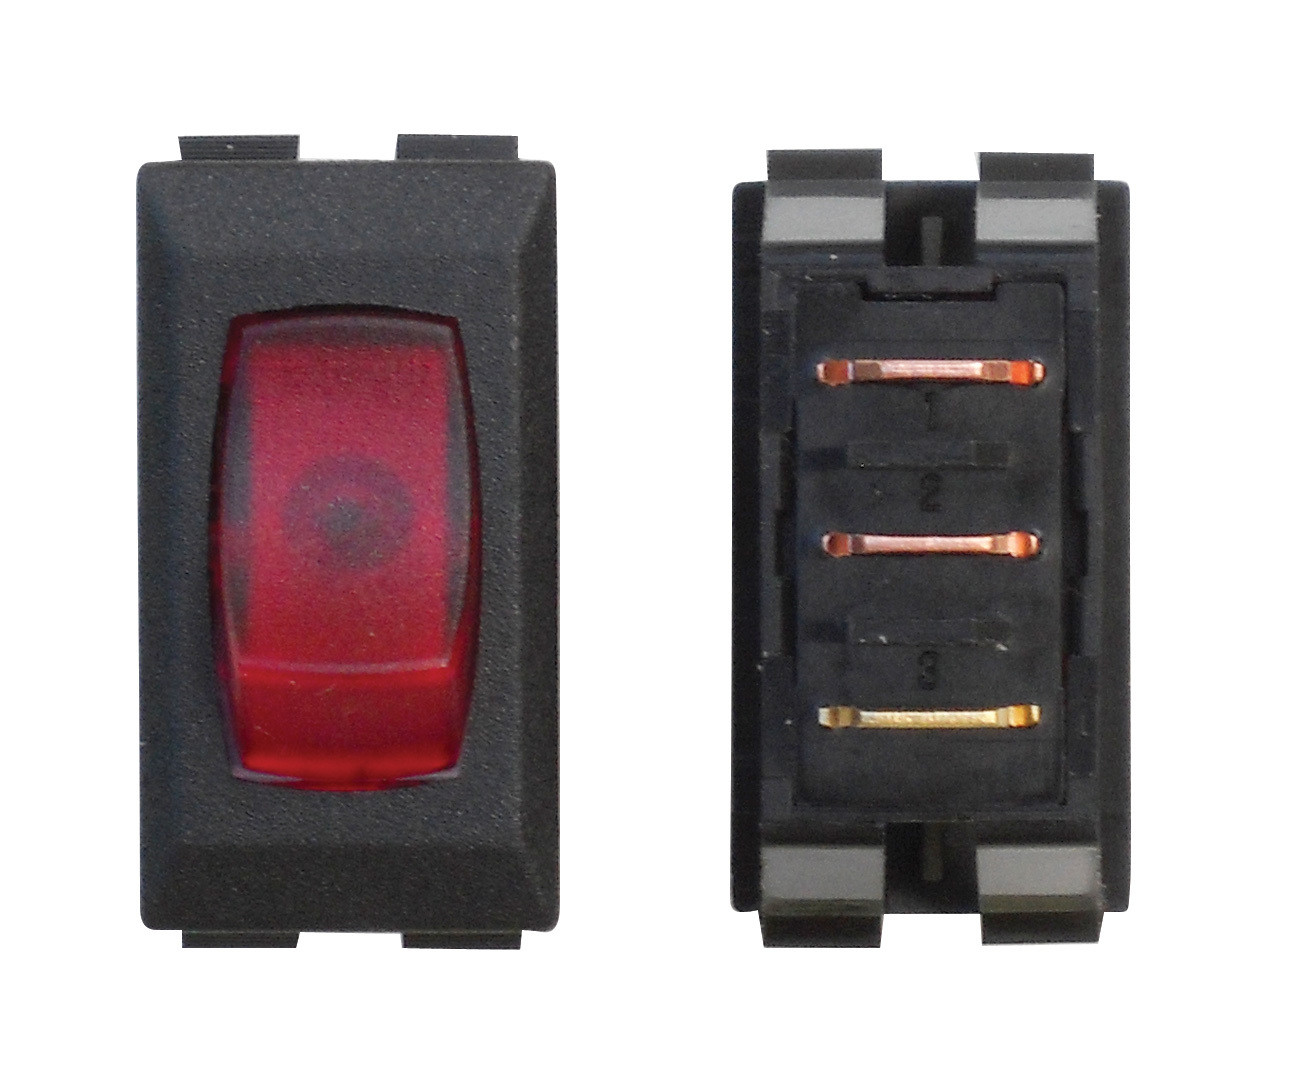 Illuminated On/Off Switch - Red/Black 1/card